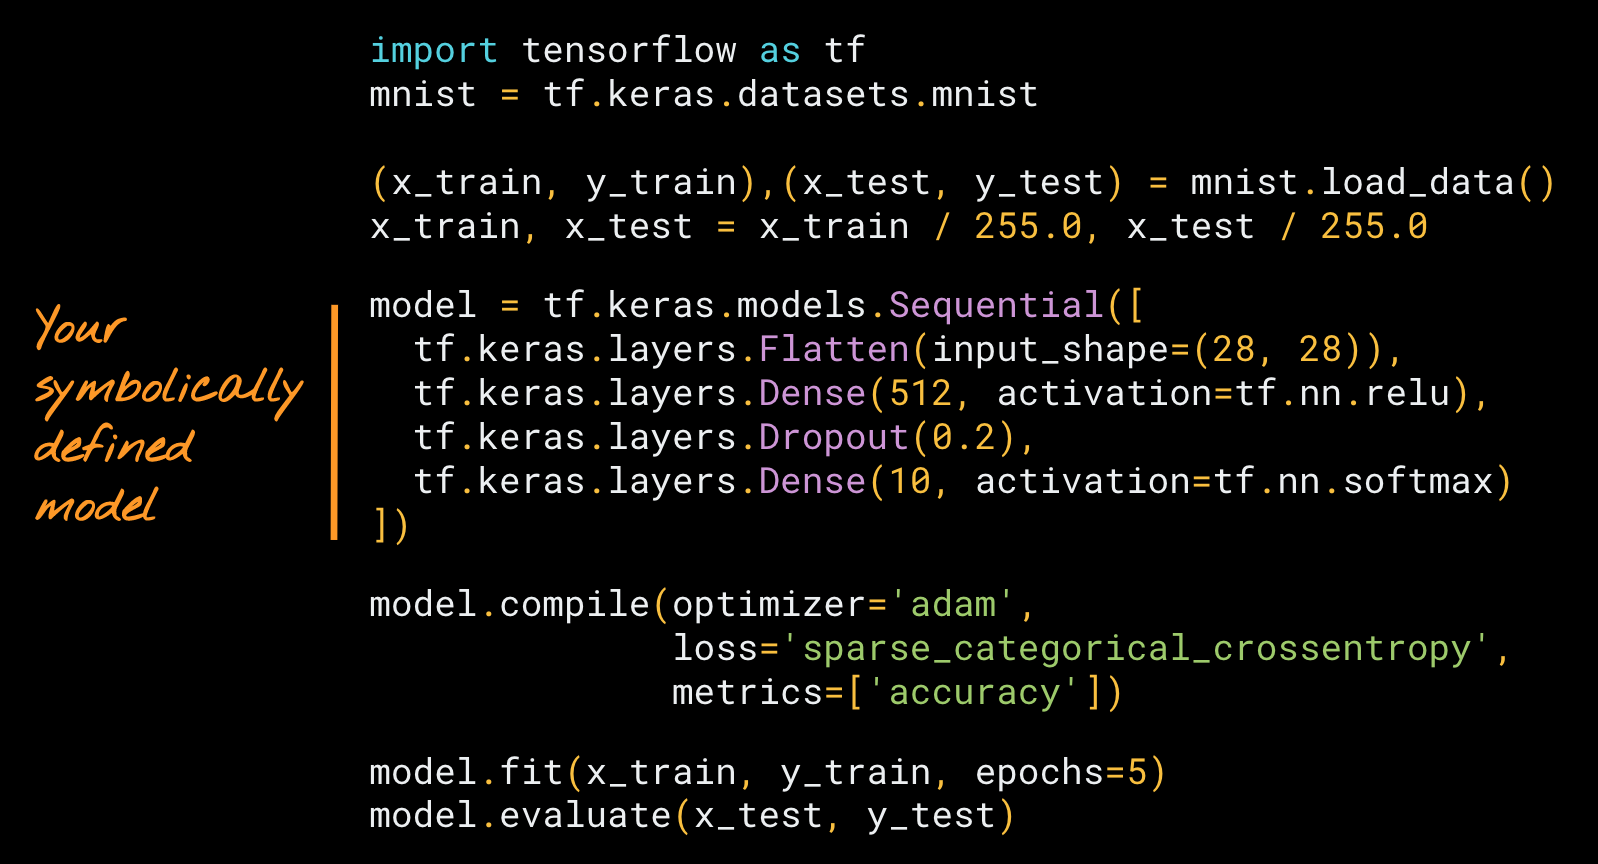 A neural network built symbolically using the Keras Sequential API.